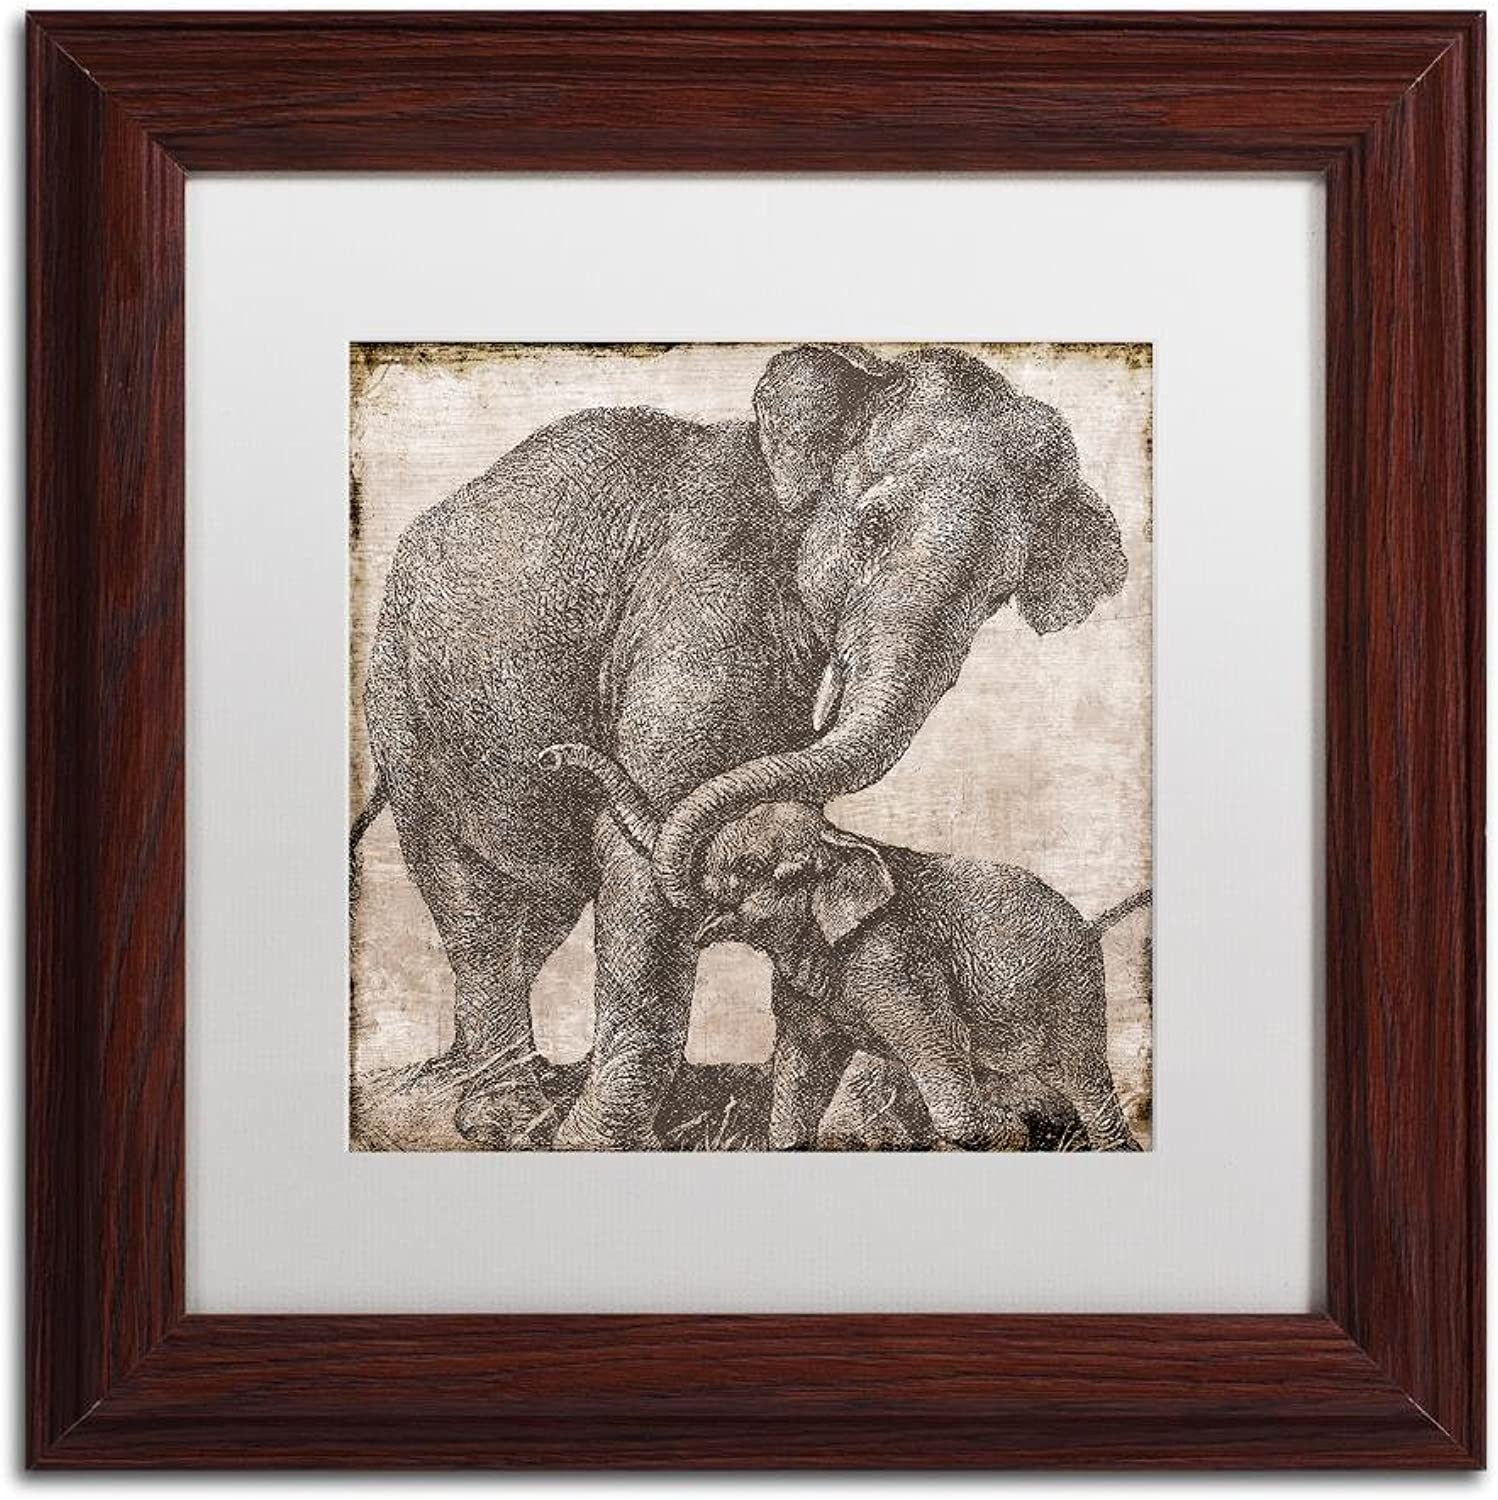 Trademark Fine Art Elephant 2 by color Bakery, White Matte, Wood Frame 11x11, Wall Art